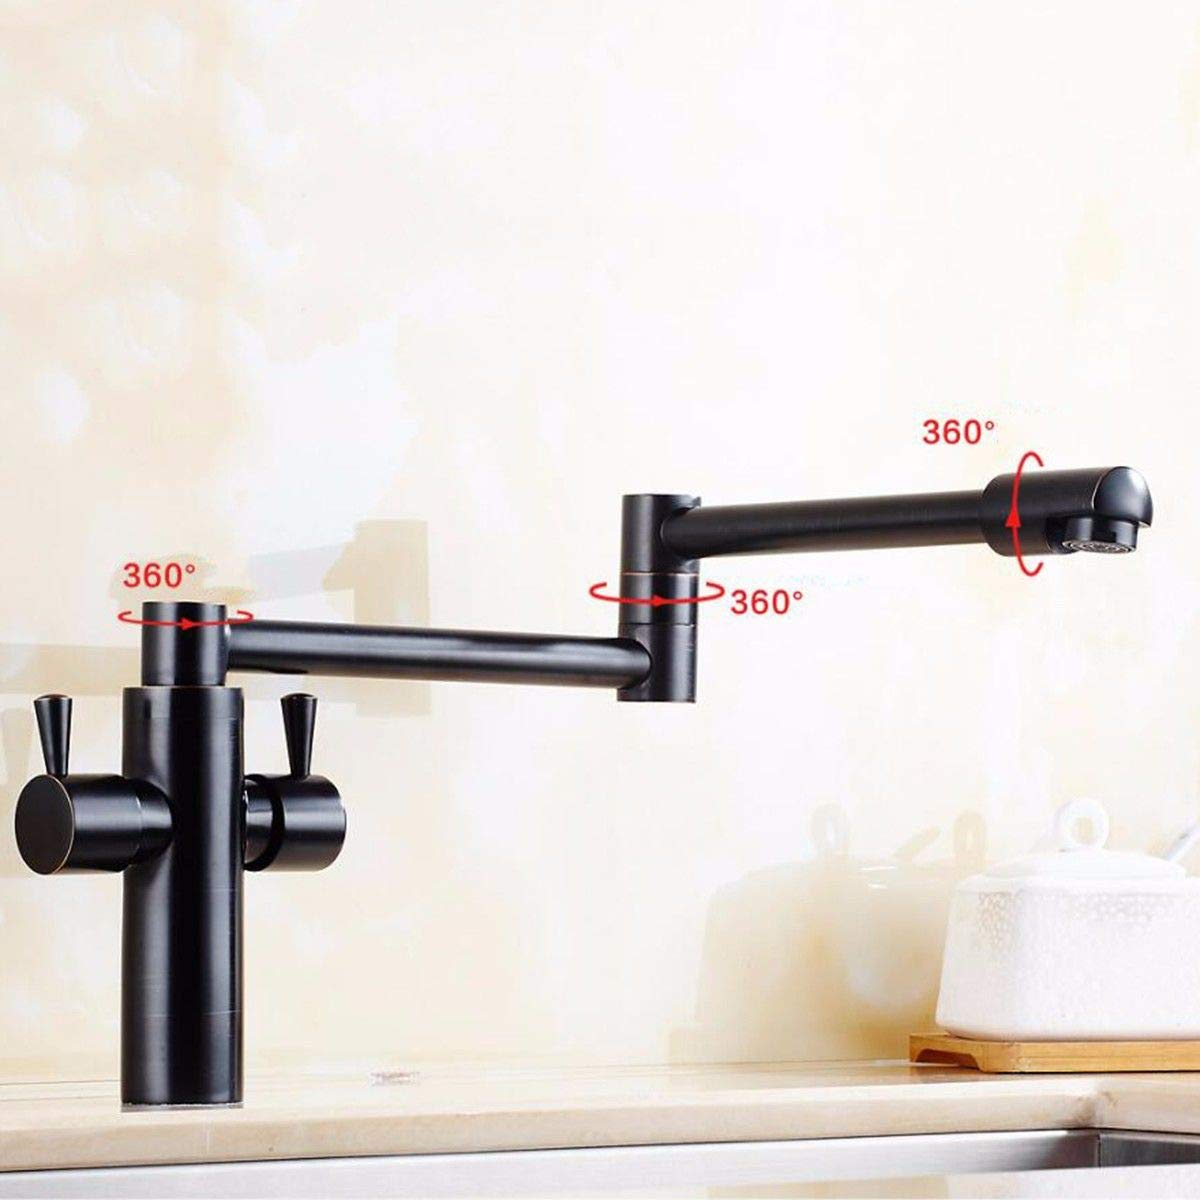 B MulFaucet Foldable Kitchen hot and Cold Faucet golden Antique Black Copper redary Sink Sink Faucet Stretch Stretch C